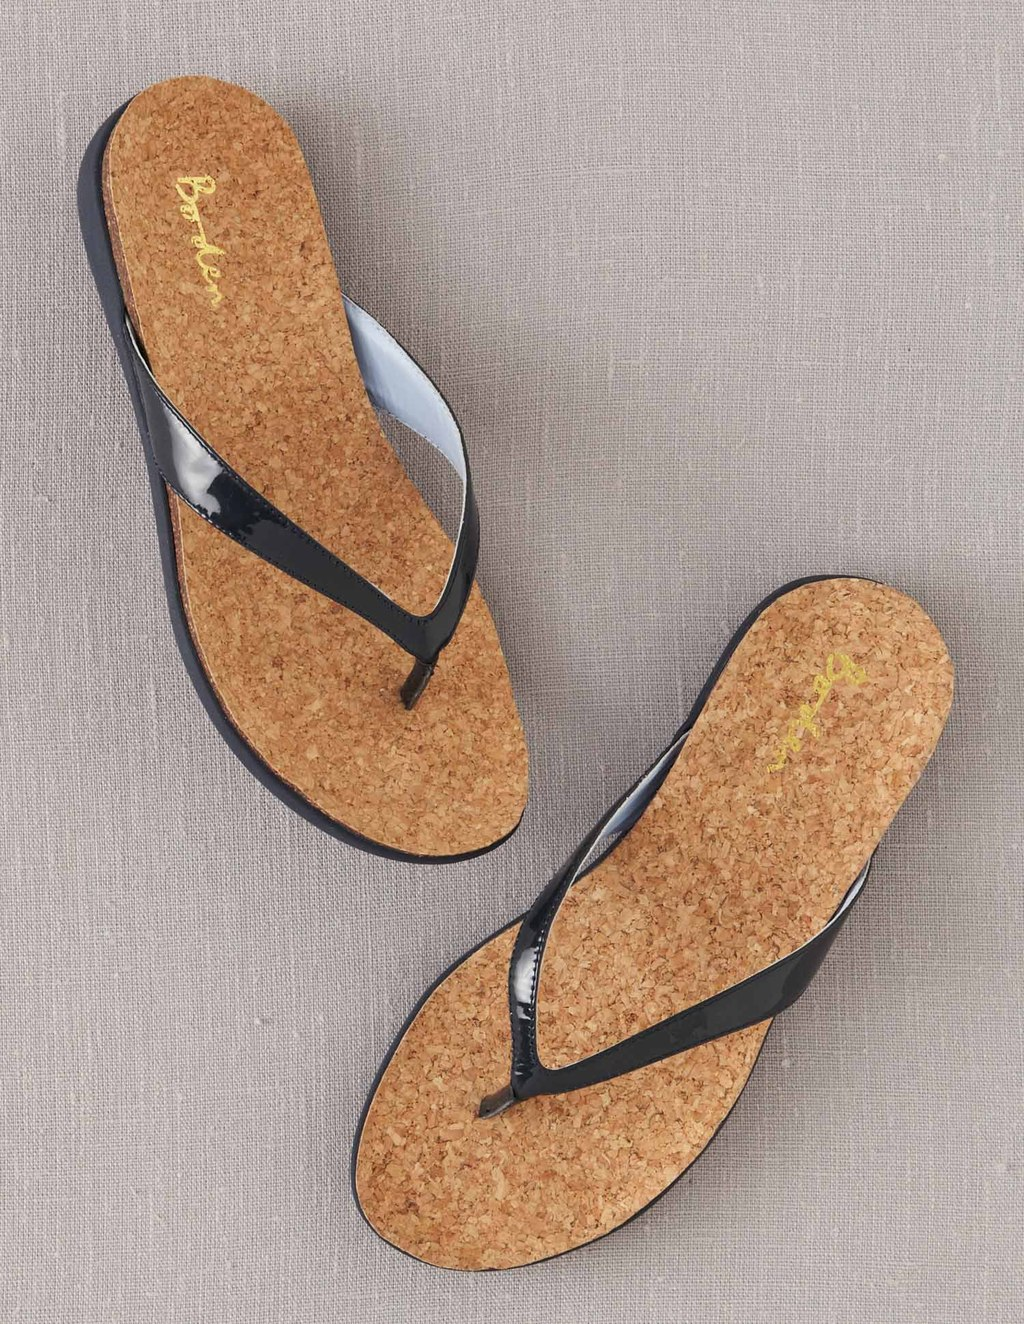 Casual Flip Flops - predominant colour: navy; occasions: casual, holiday; material: leather; heel height: flat; heel: standard; toe: open toe/peeptoe; style: flip flops; finish: patent; pattern: plain; season: s/s 2013